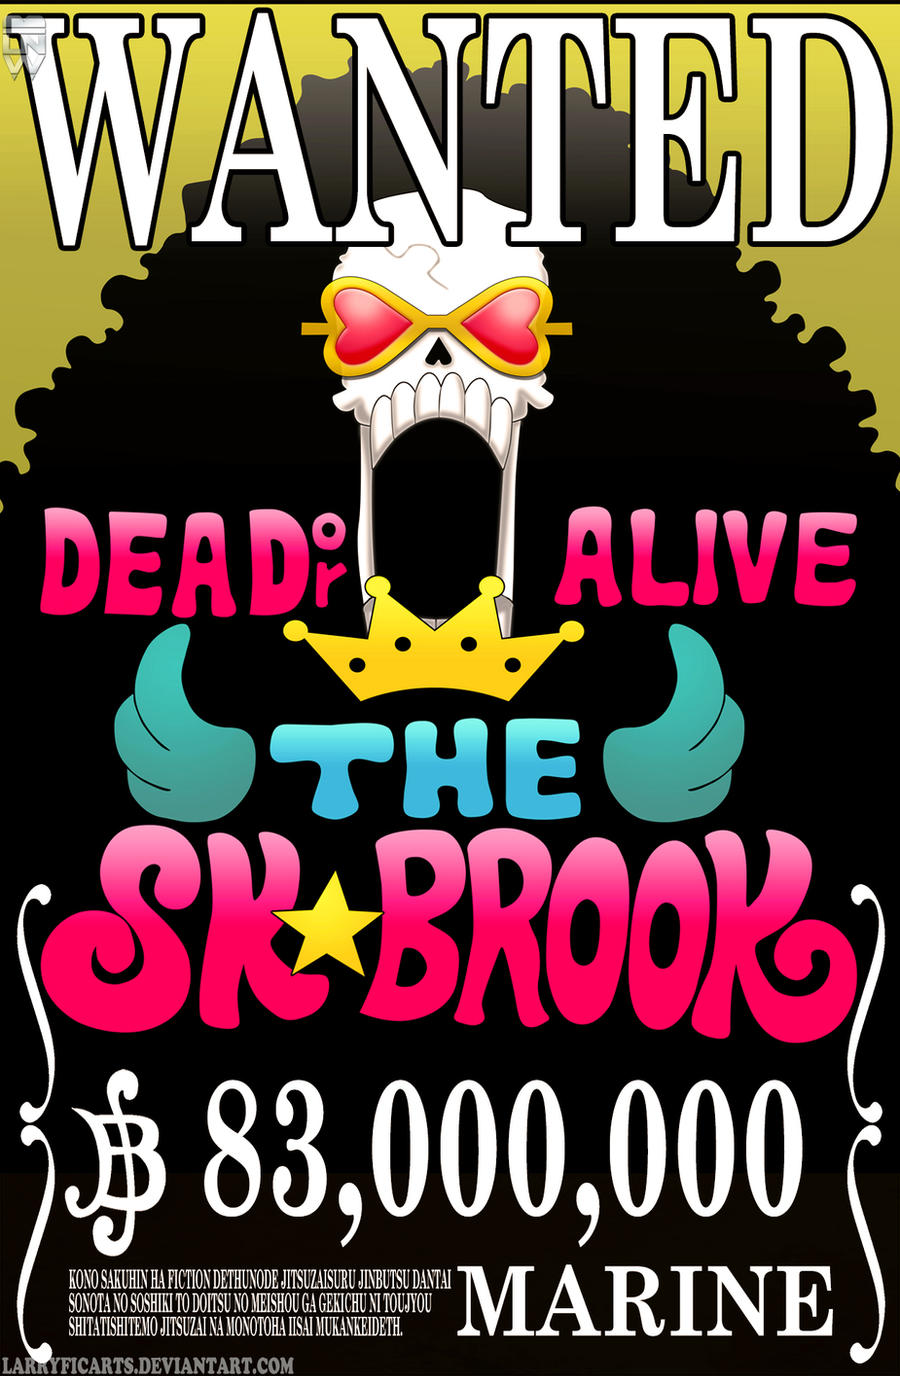 Brook Wanted Poster by LarryficArts on DeviantArt